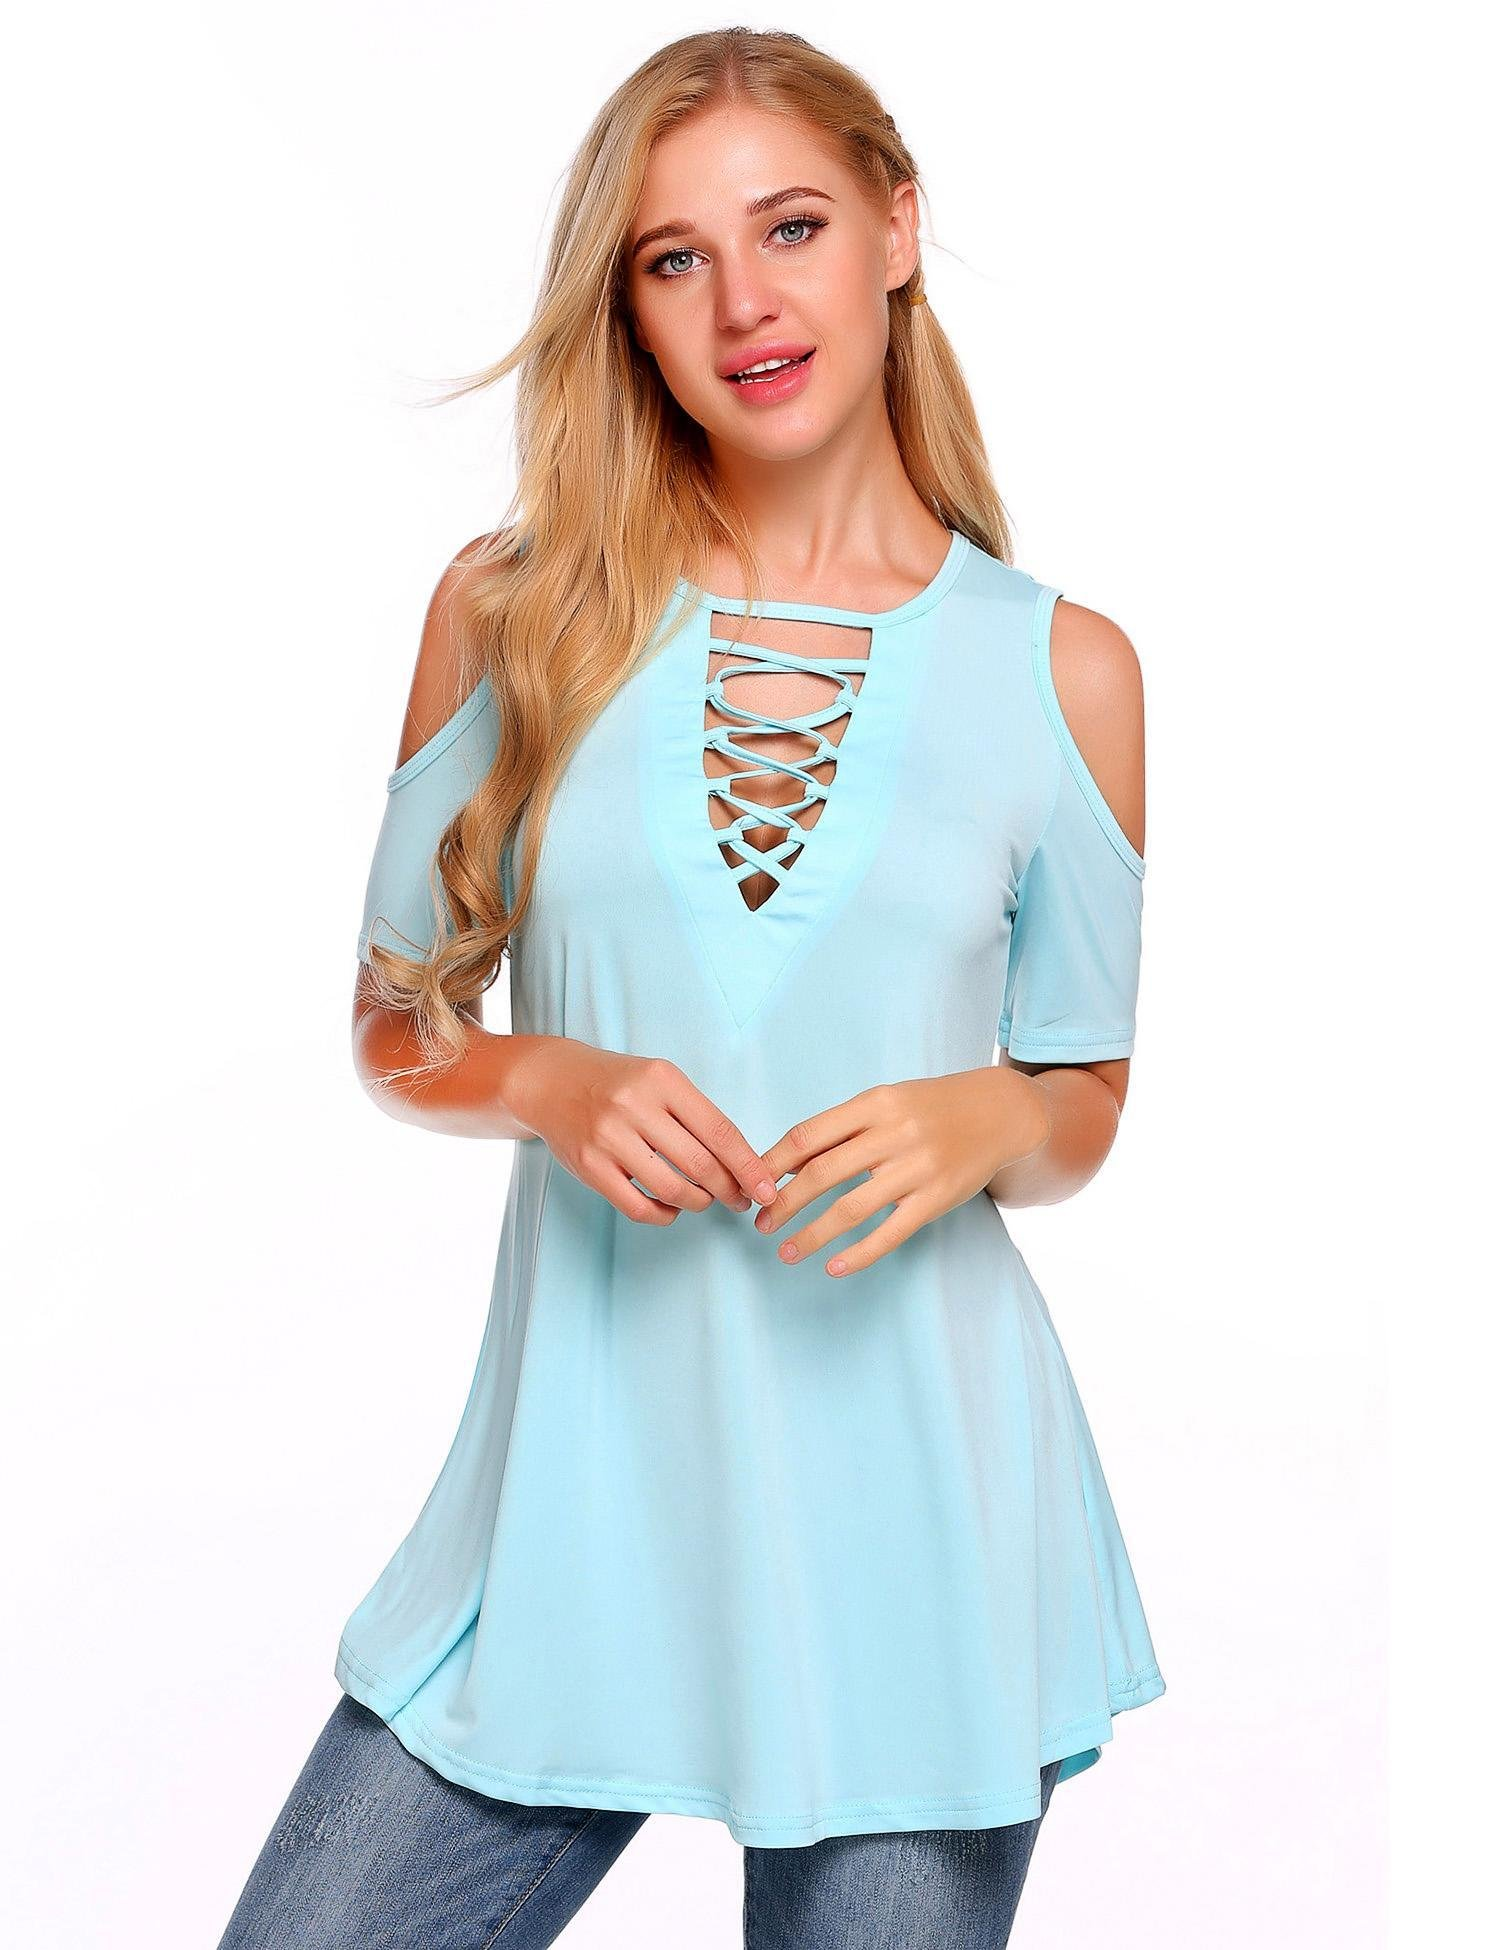 Zeagoo Women's Blouse Shirts Criss Cross Cold Shoulder Short Sleeve Casual V Neck Loose Tunic Tops S-XXL